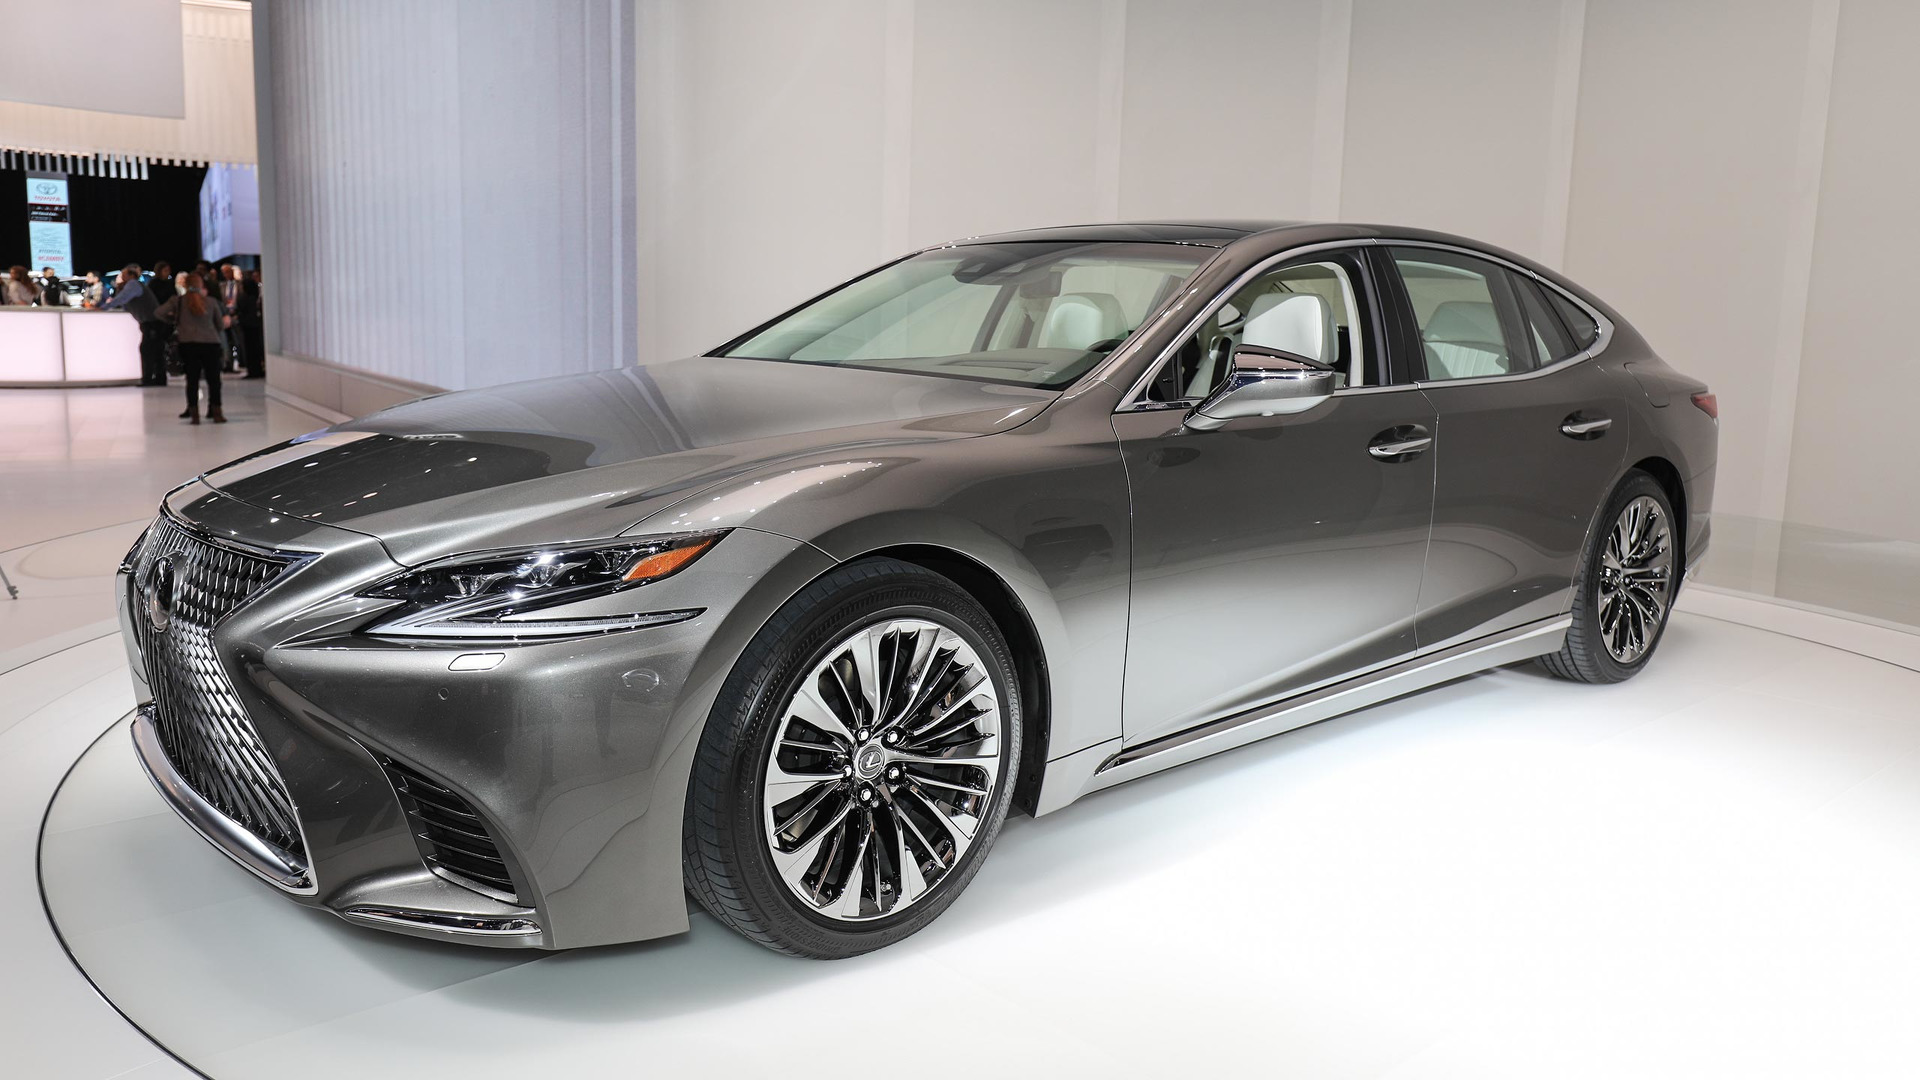 ls-imagesize:1440x956 2018 Lexus LS brings new V6 biturbo to the world product 2017-01-09 13:46:01